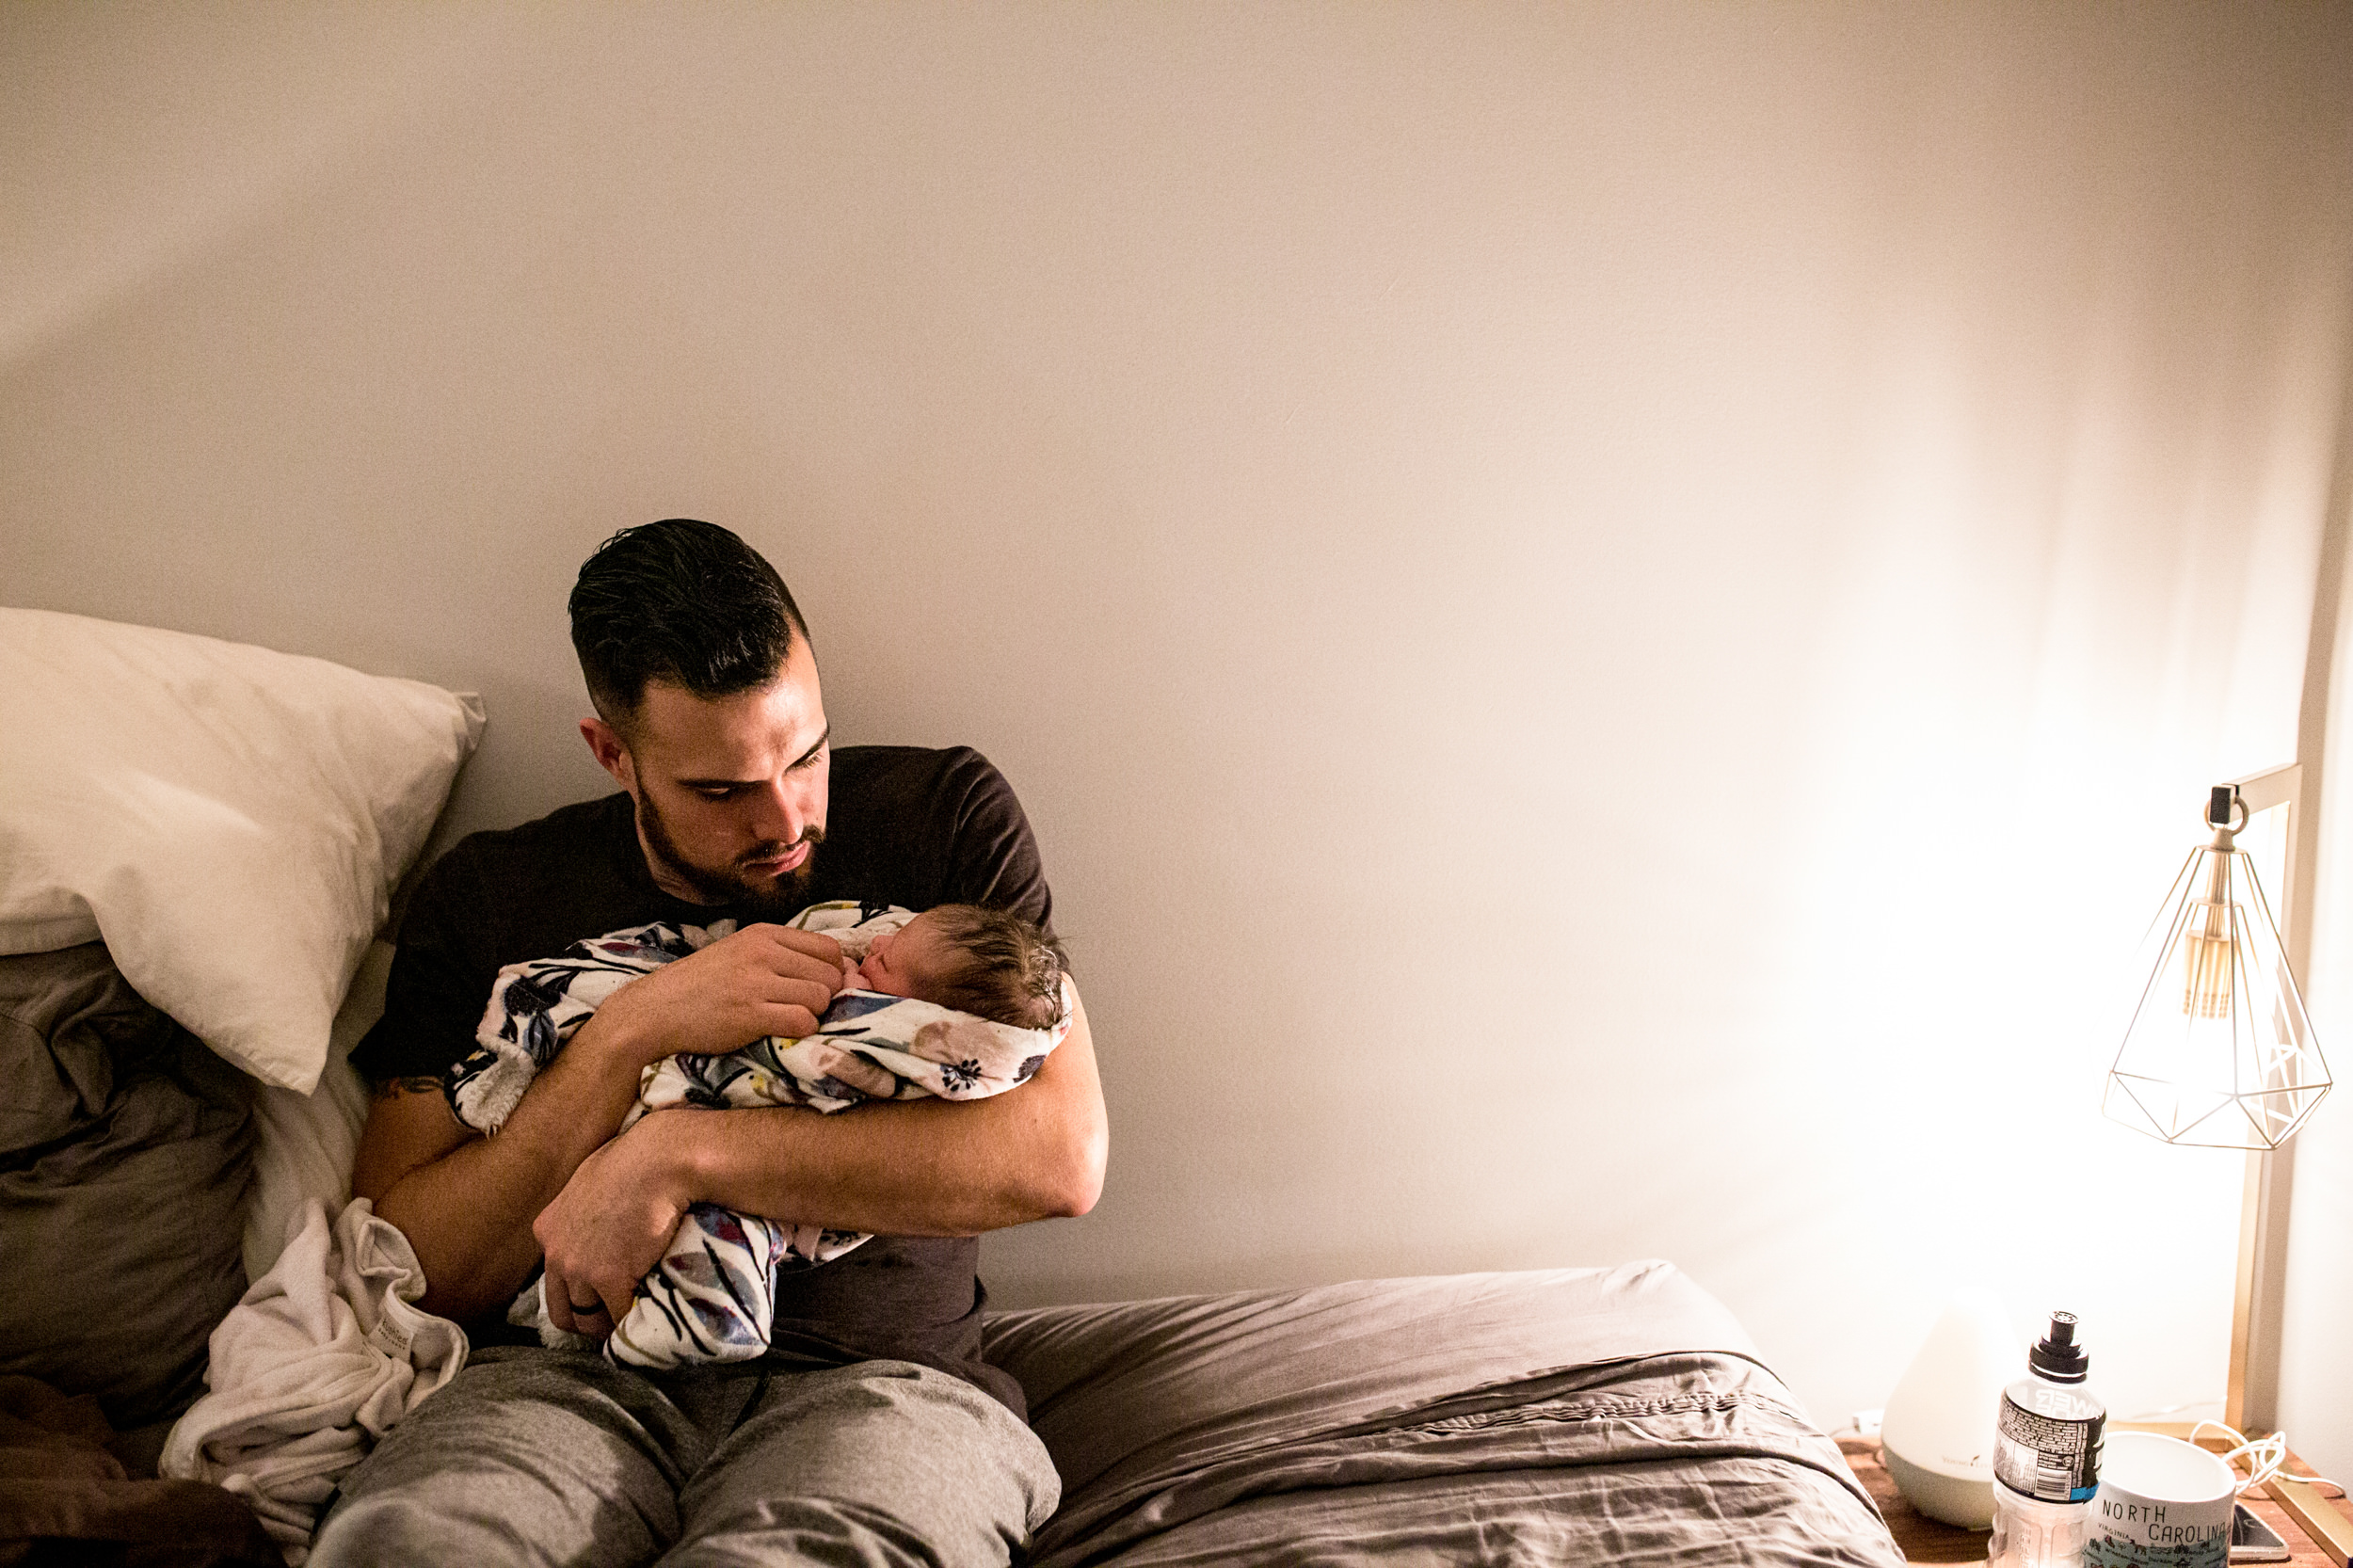 father holding his new baby on bed after home birth